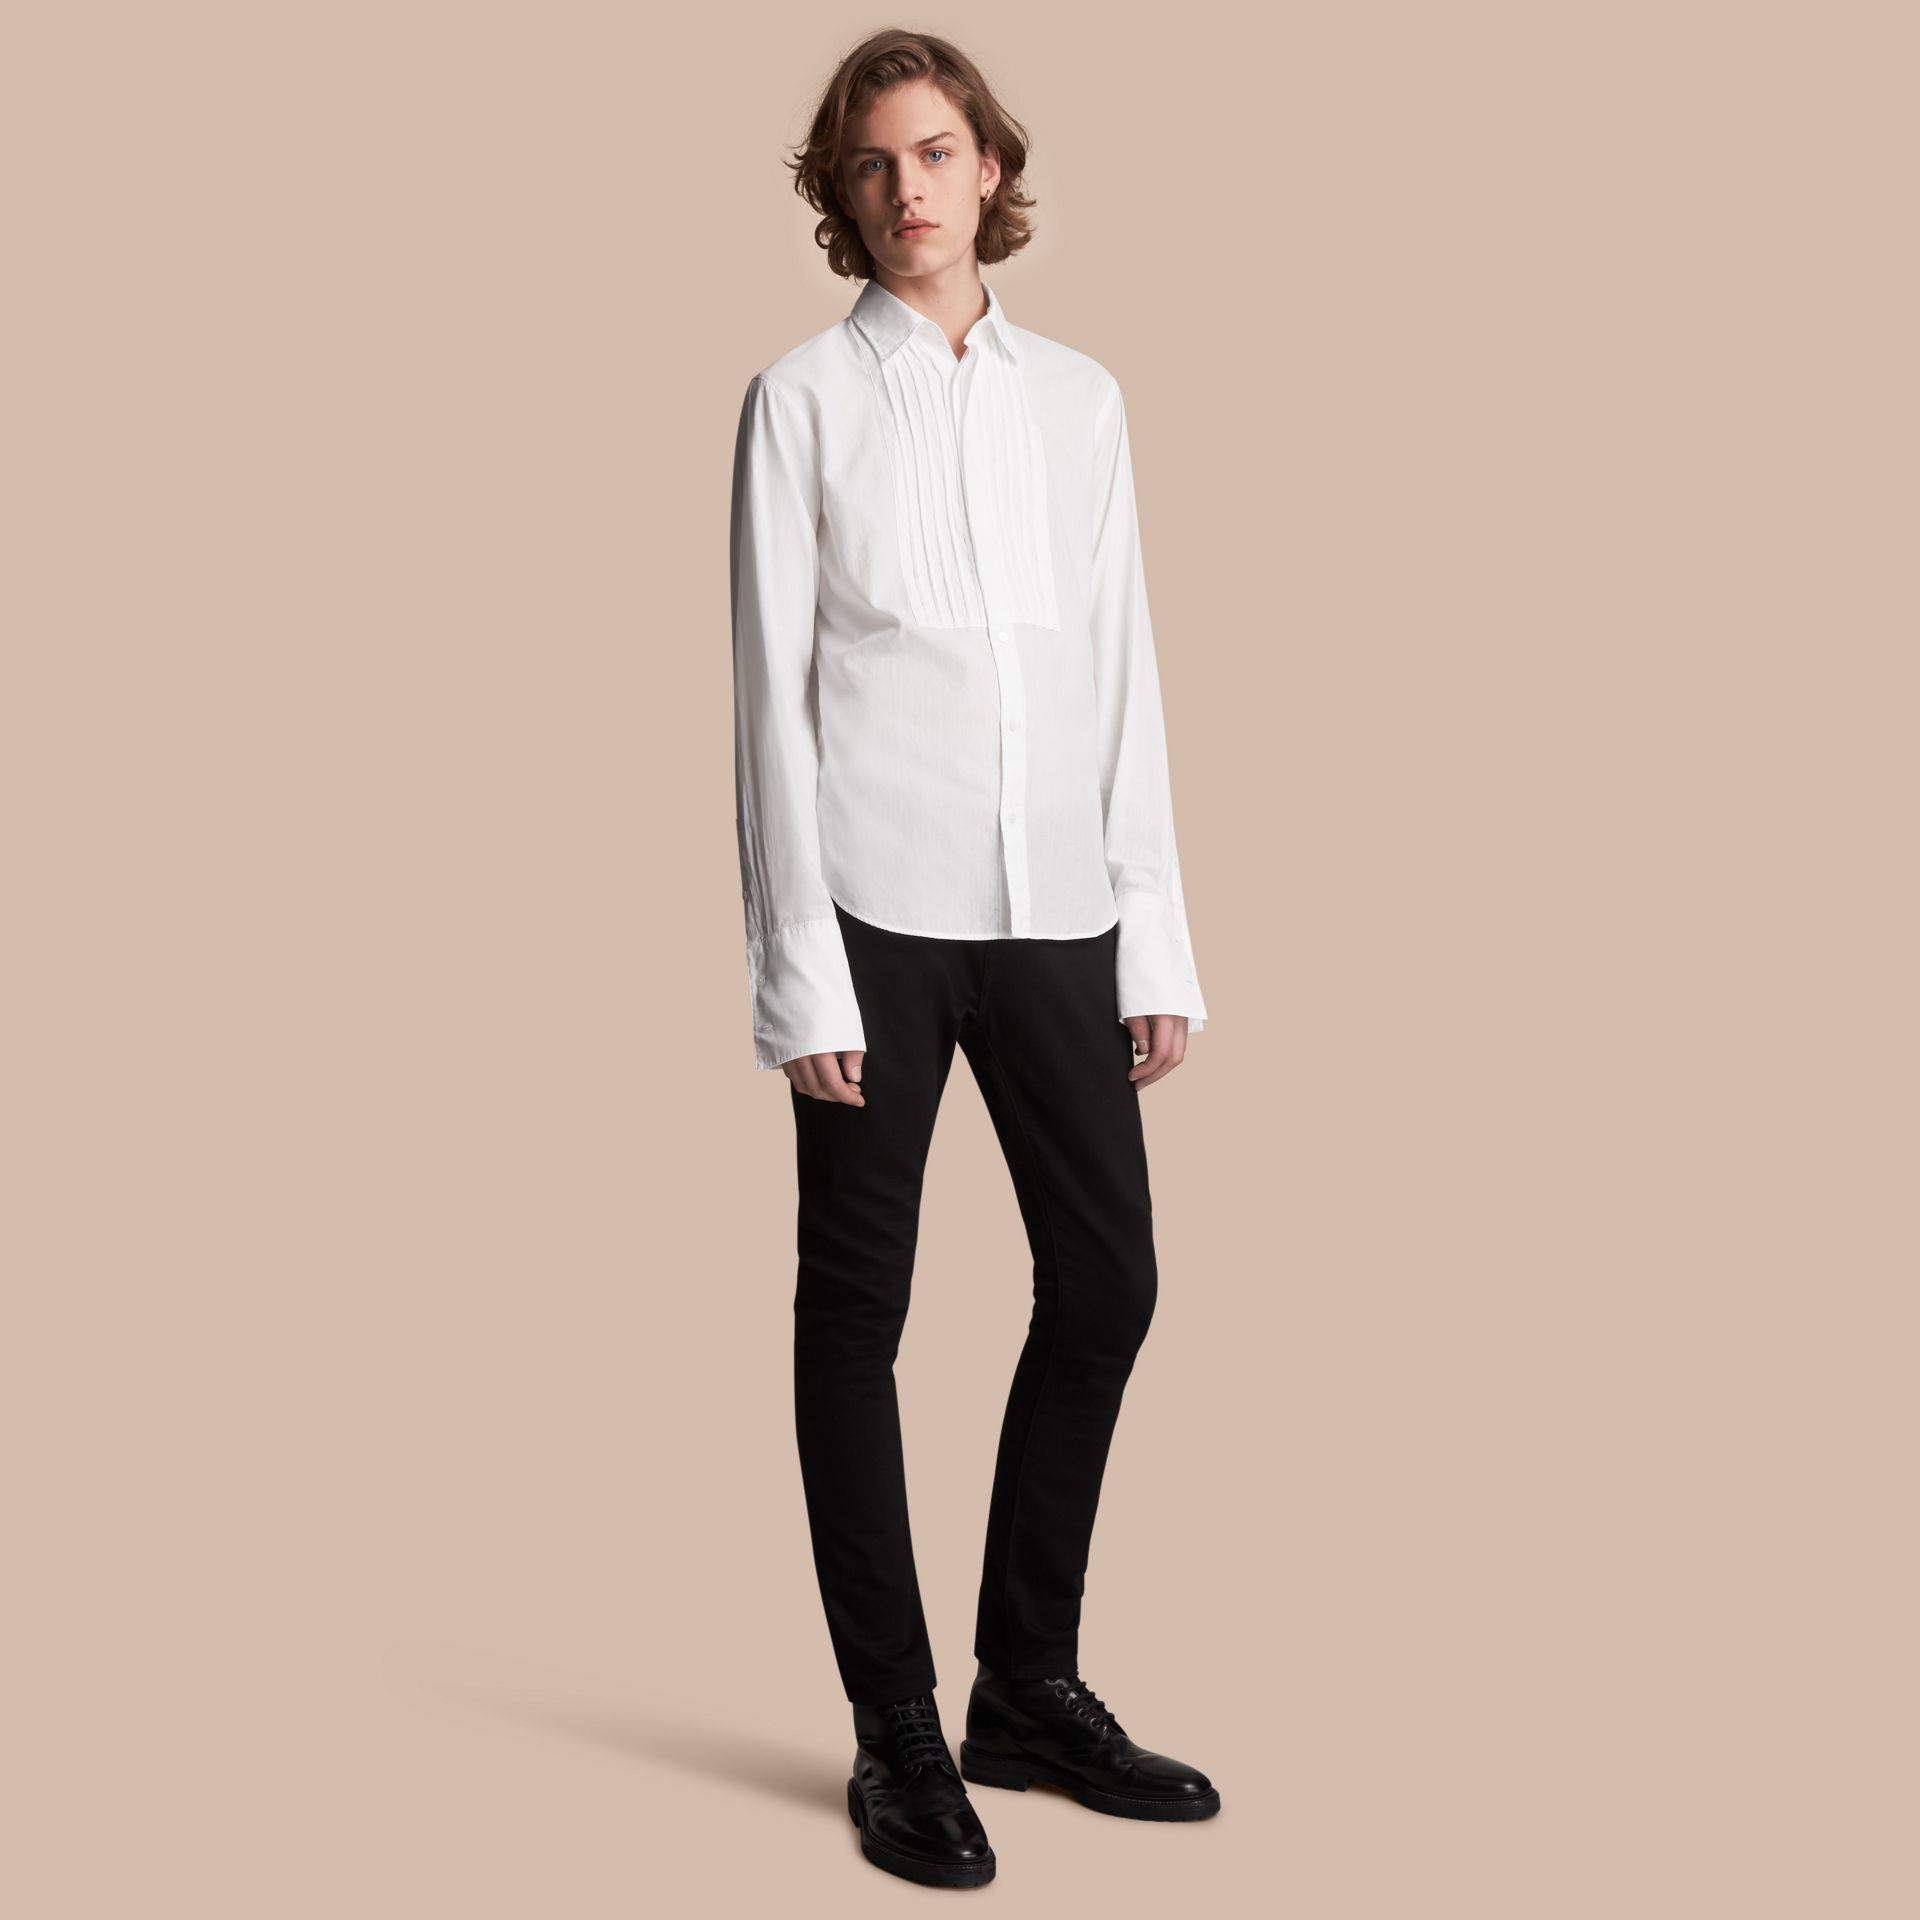 Unisex Double-cuff Pintuck Bib Cotton Shirt in White - Men | Burberry - gallery image 1